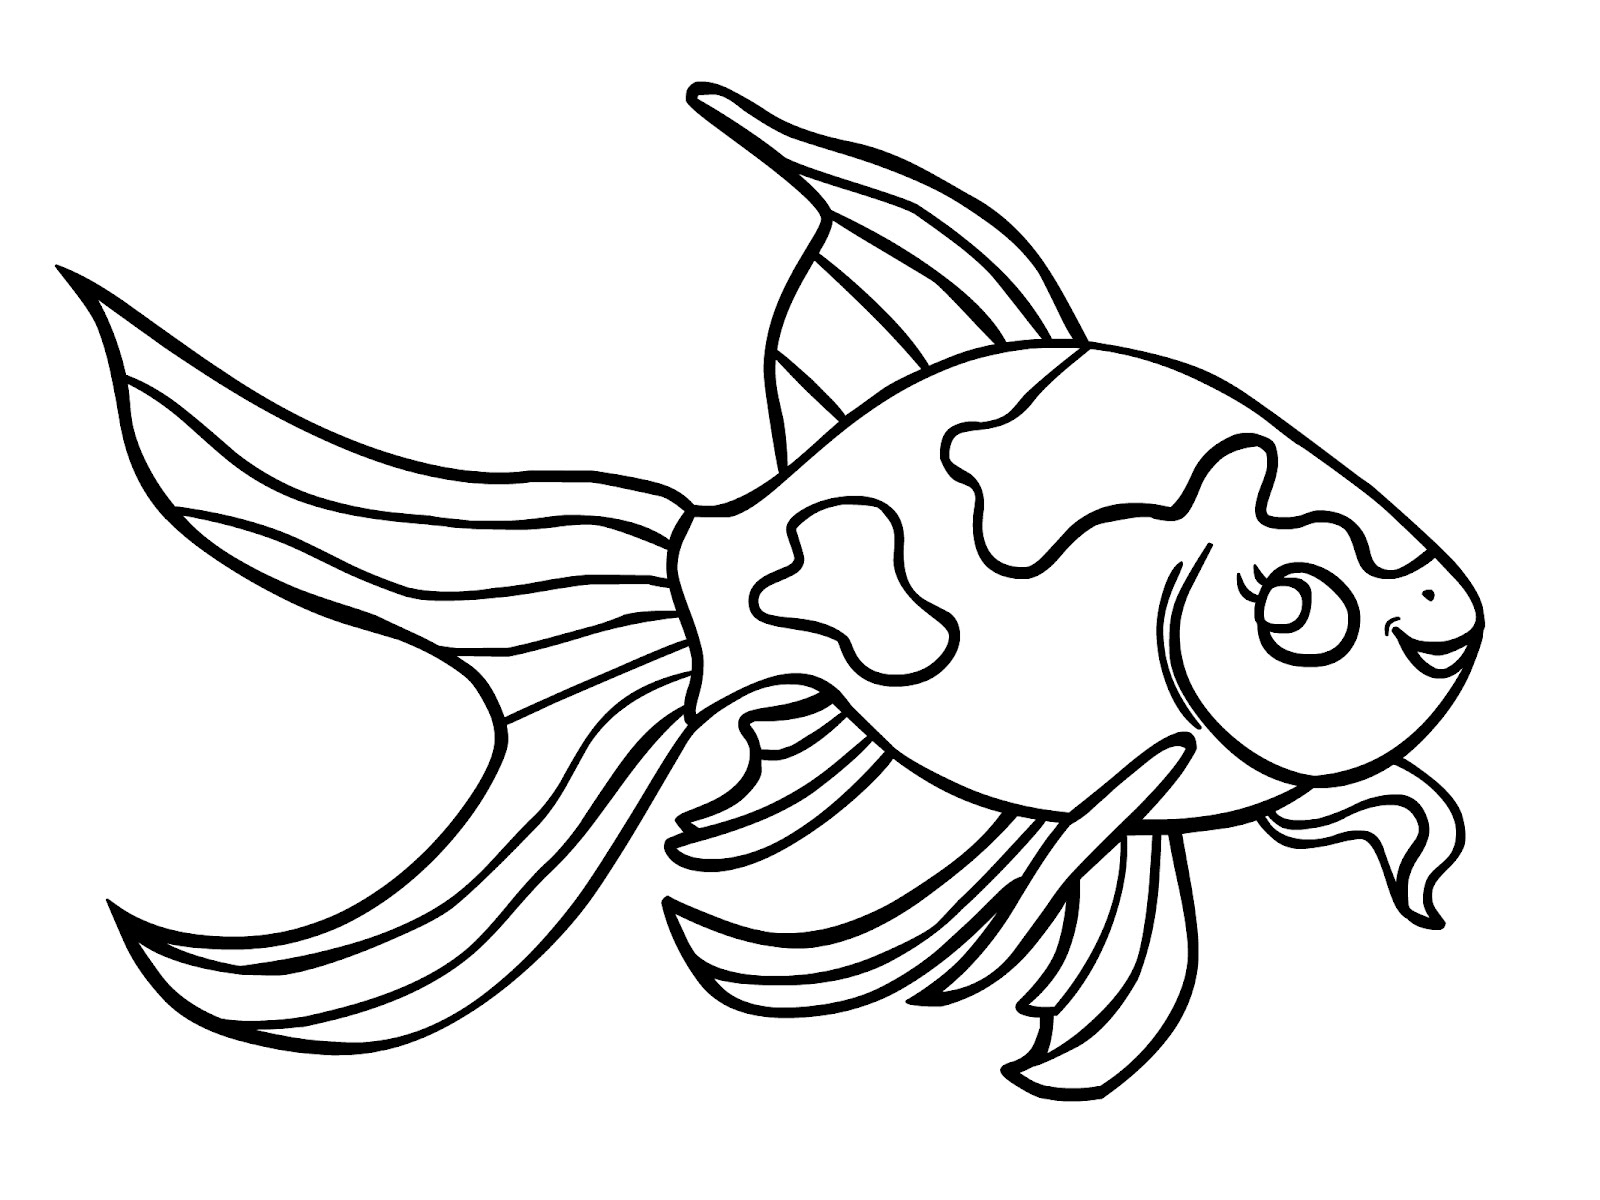 Inspiration cute fishies free. Fish clip art coloring page image black and white